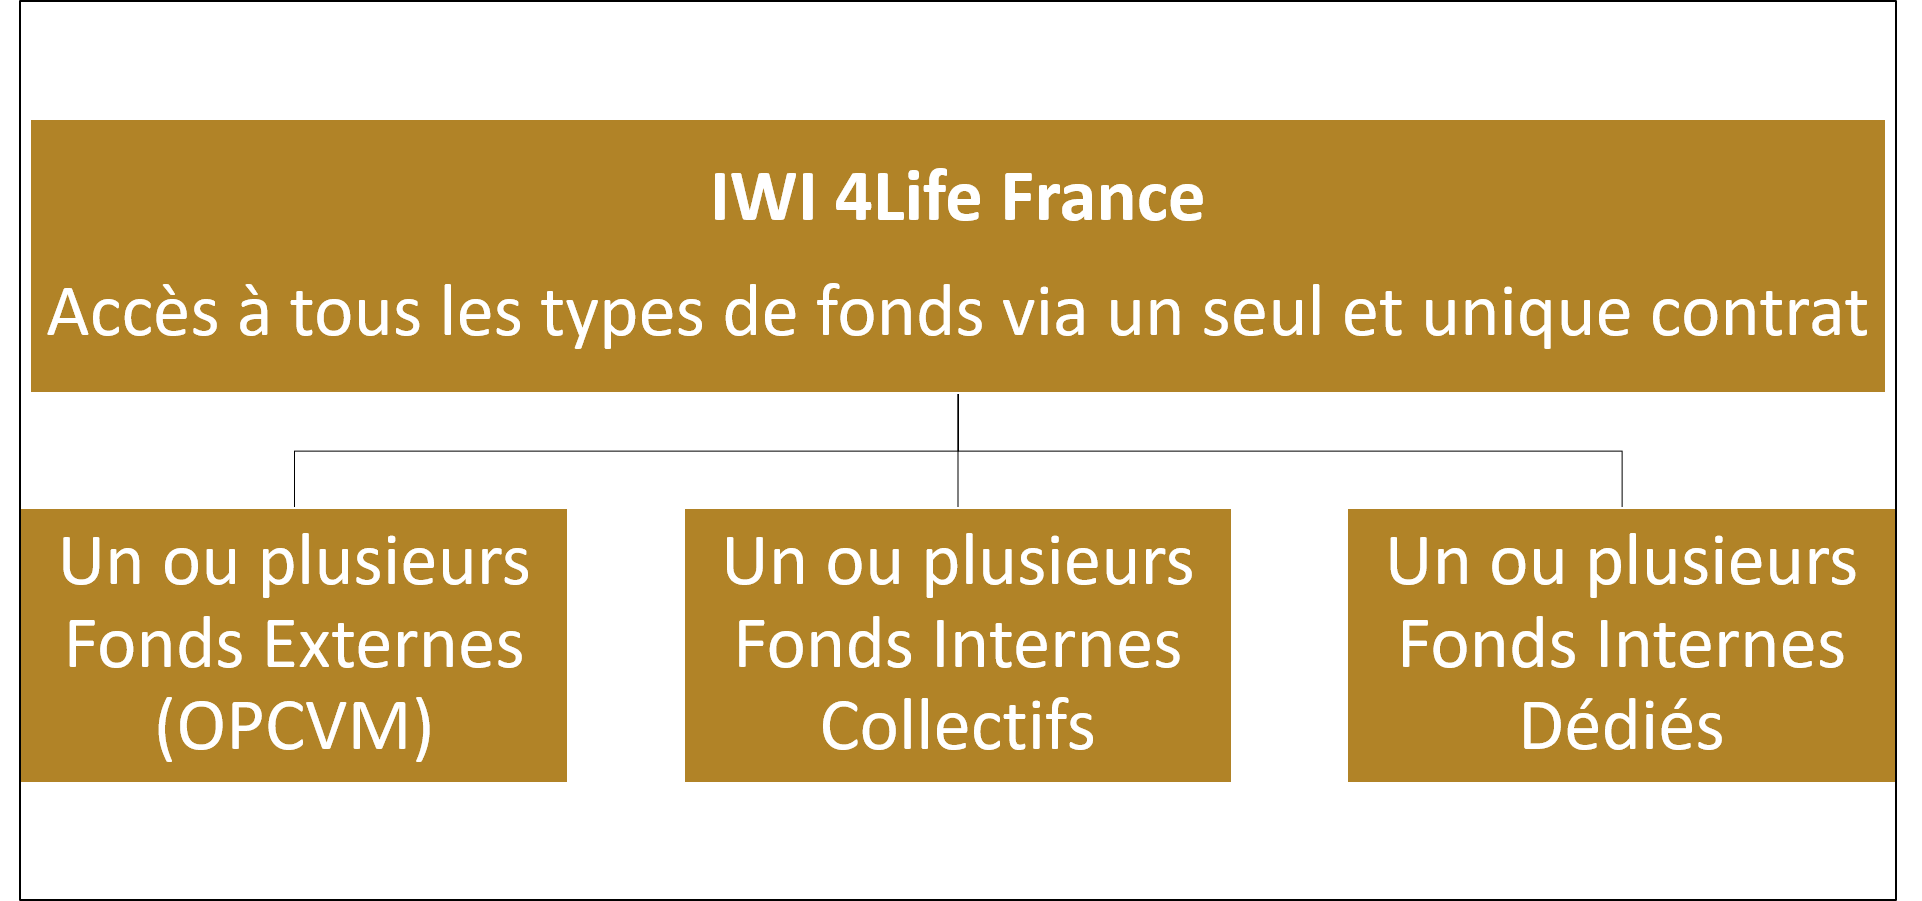 IWI 4Life France - All-in-One